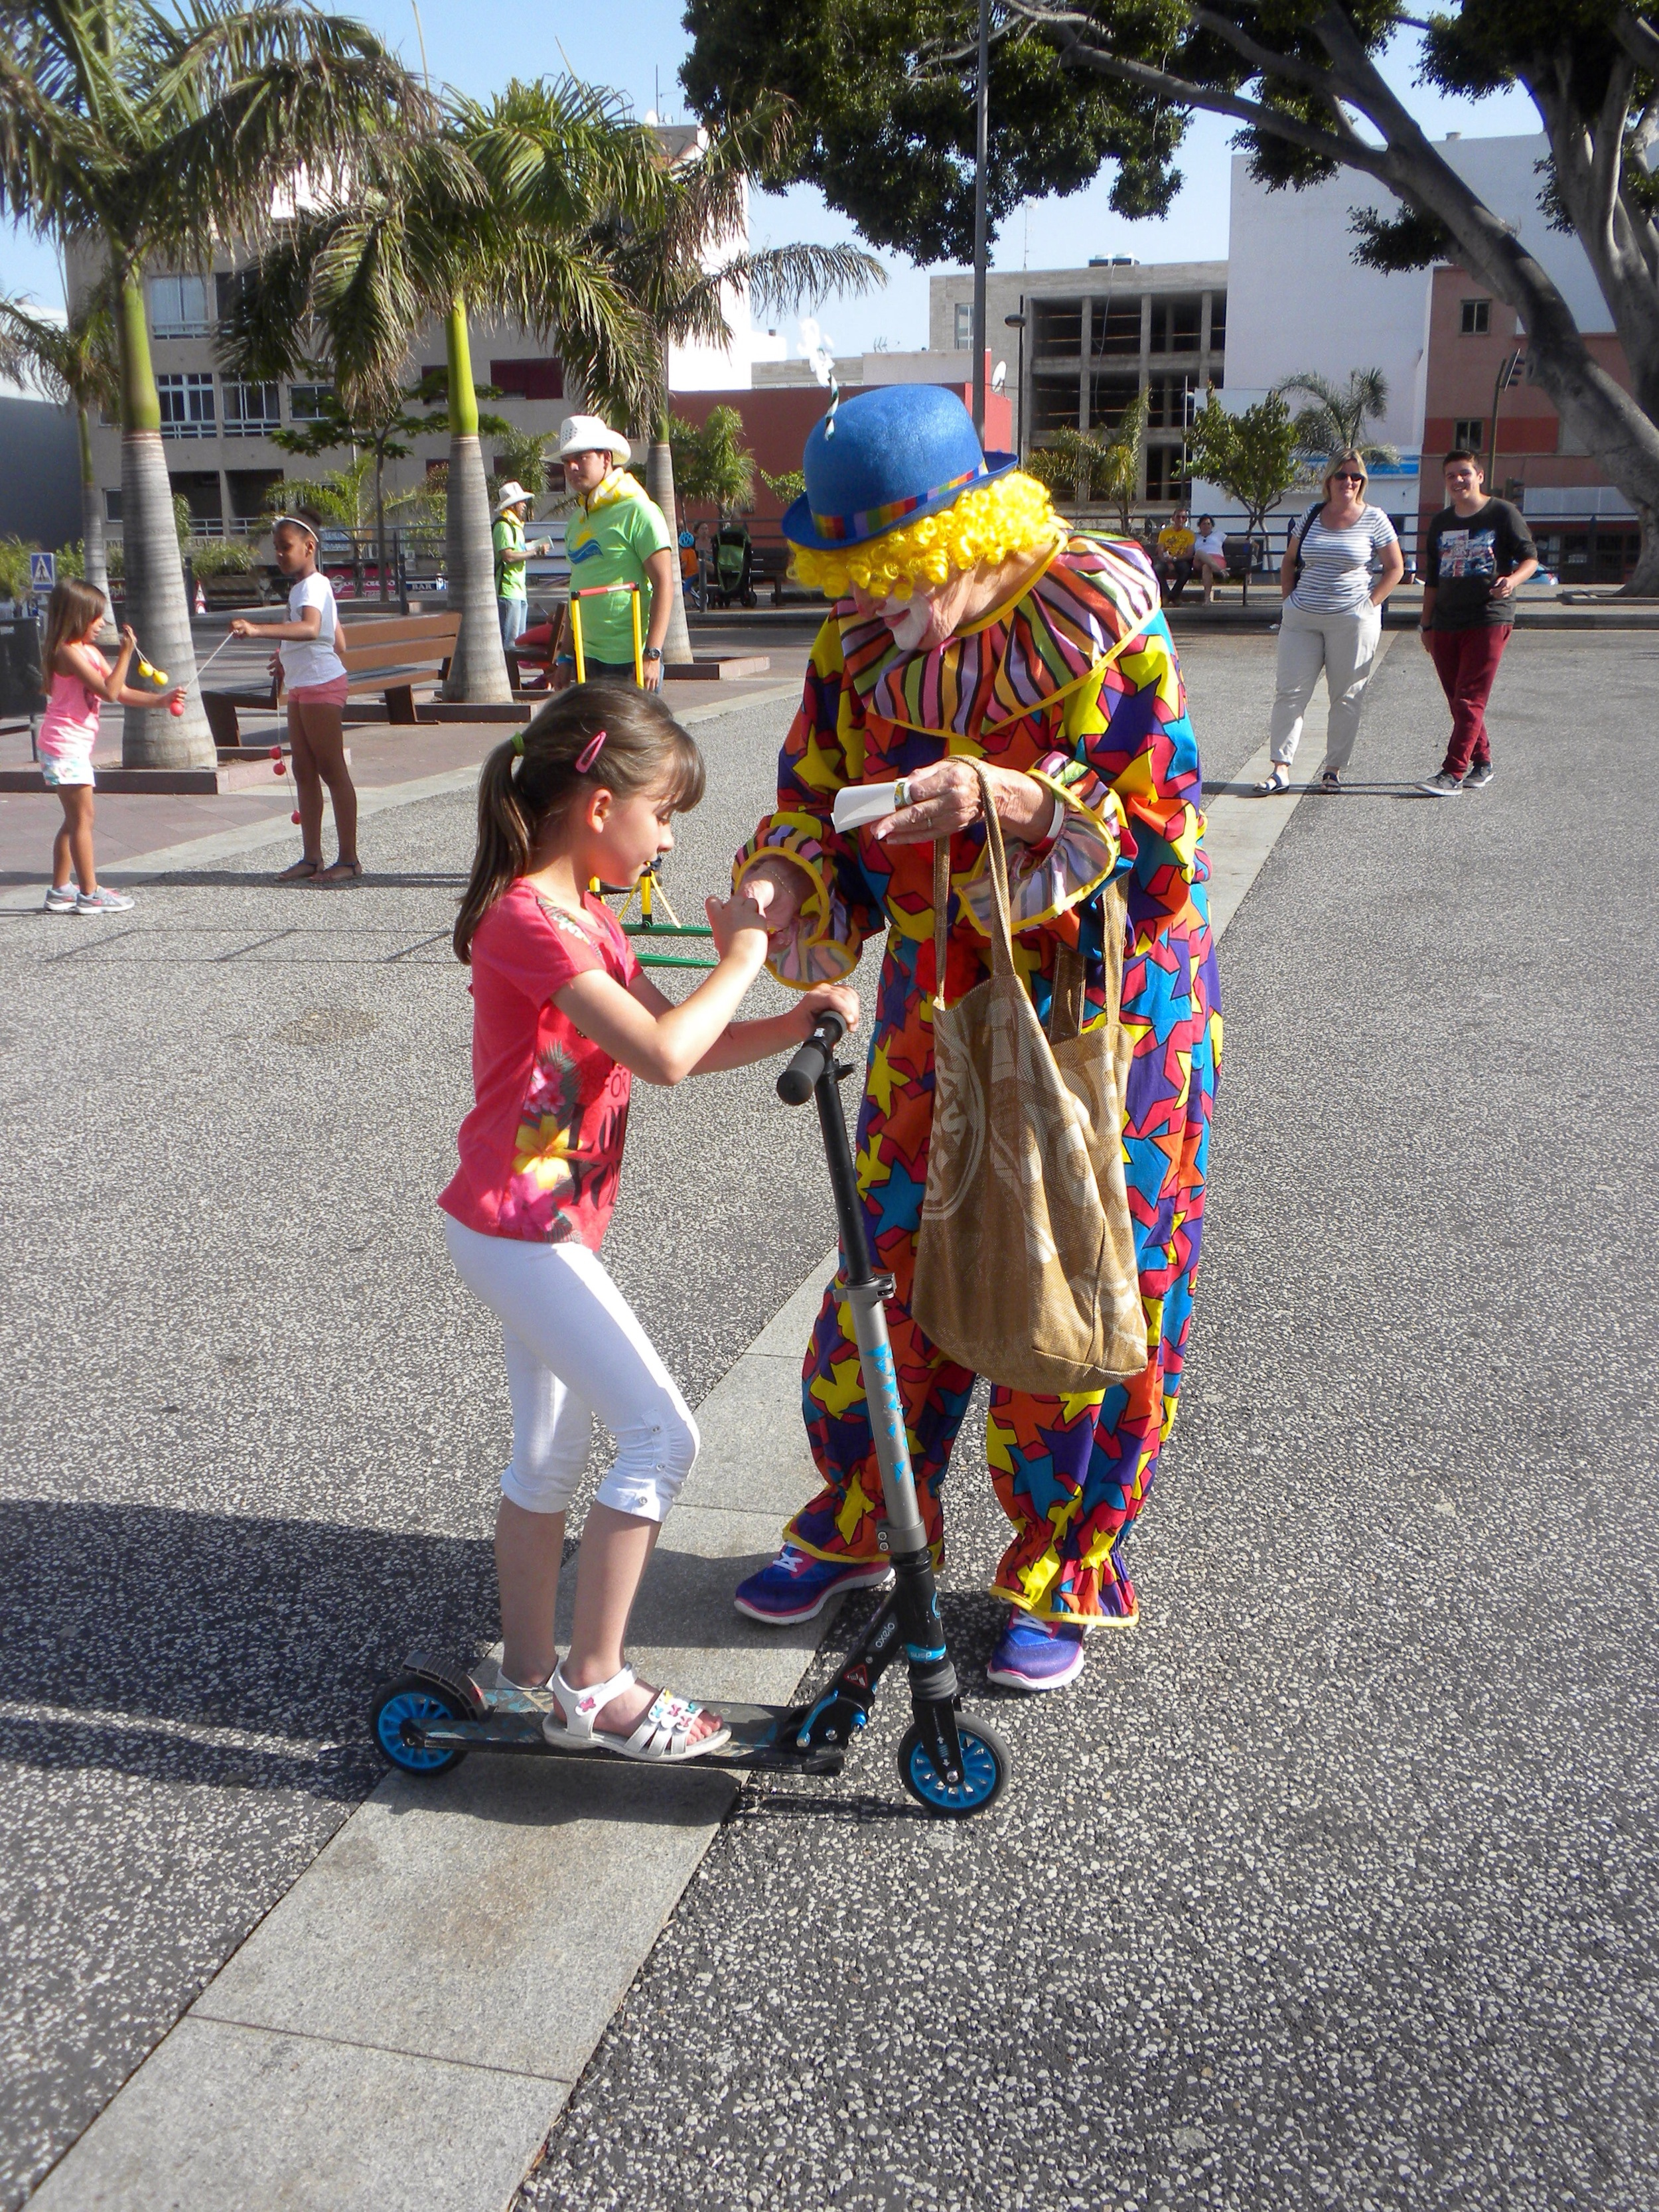 Our clown gave candy to the children.